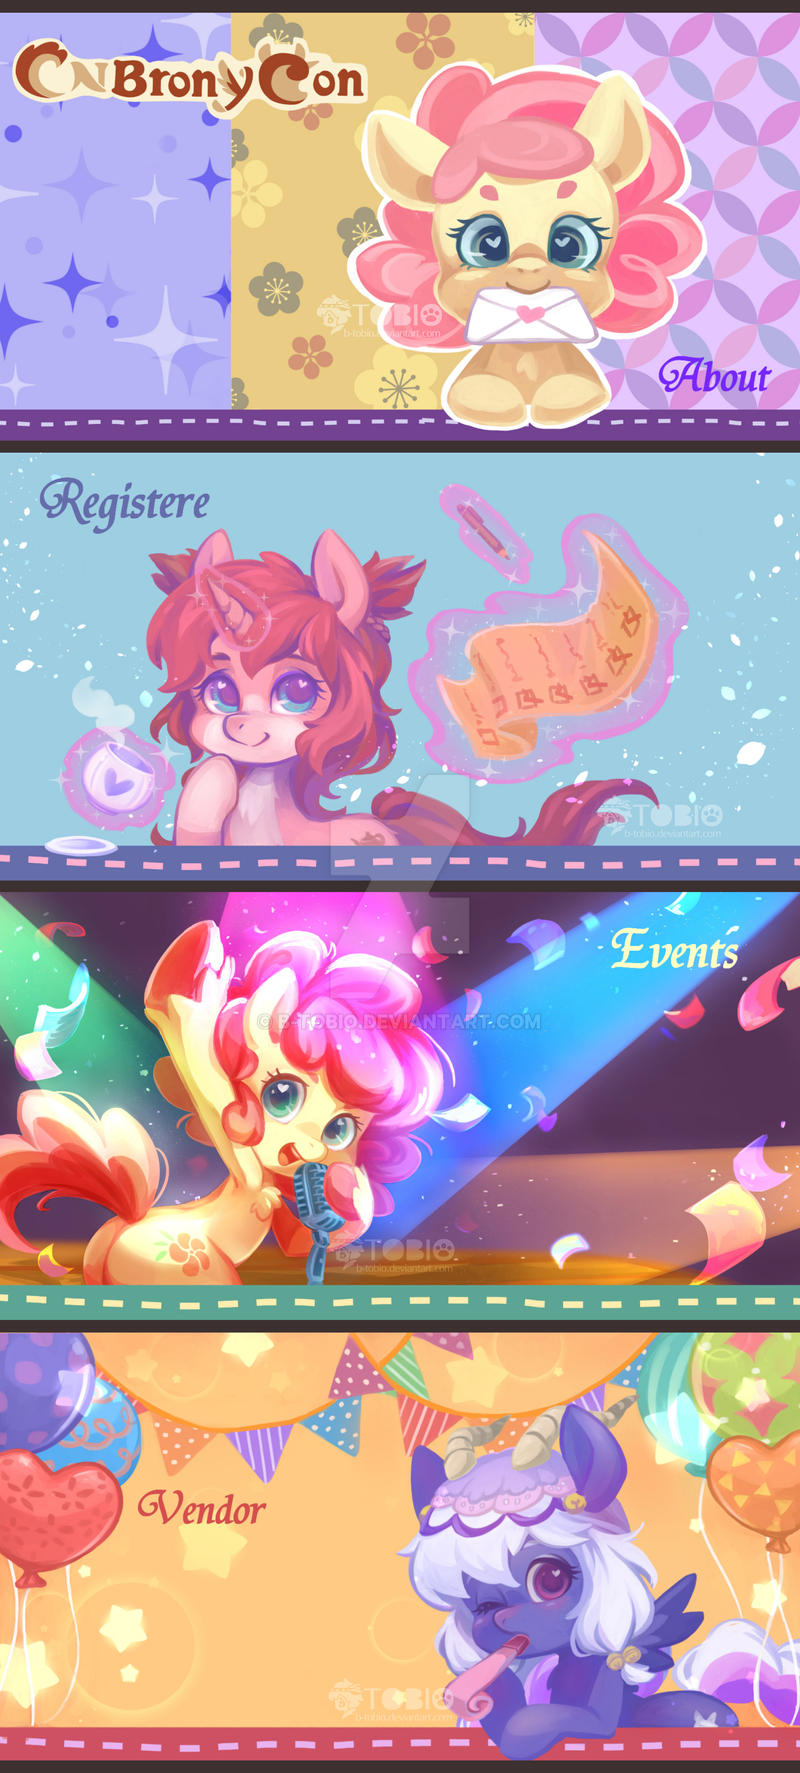 [CNBY2017/ PONY] Banner+LOGO by B-TOBIO on DeviantArt